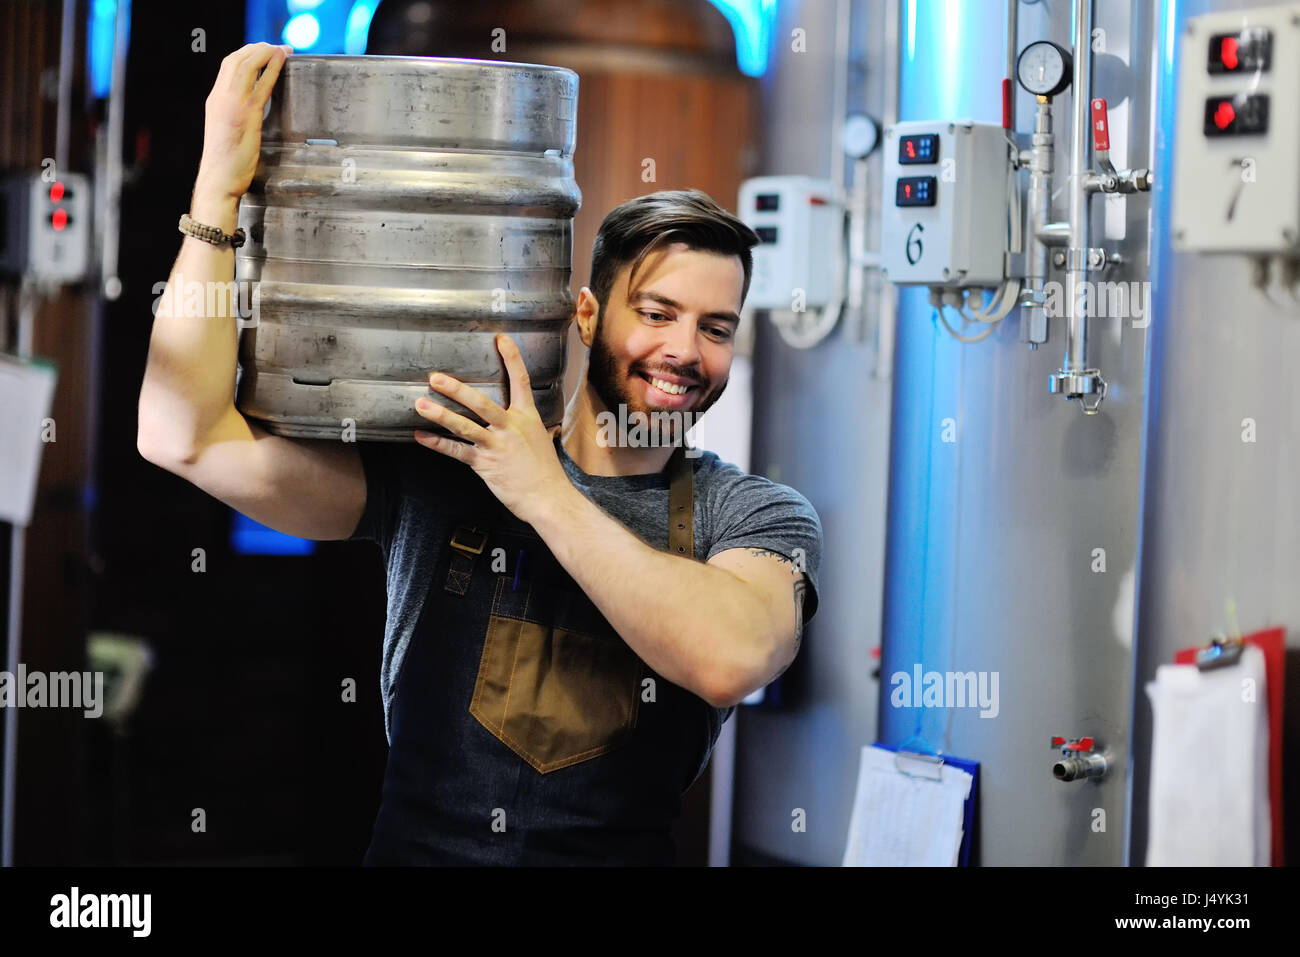 Man with a beard working in uniform with a barrel of beer in a brewery with metal containers in the background Stock Photo